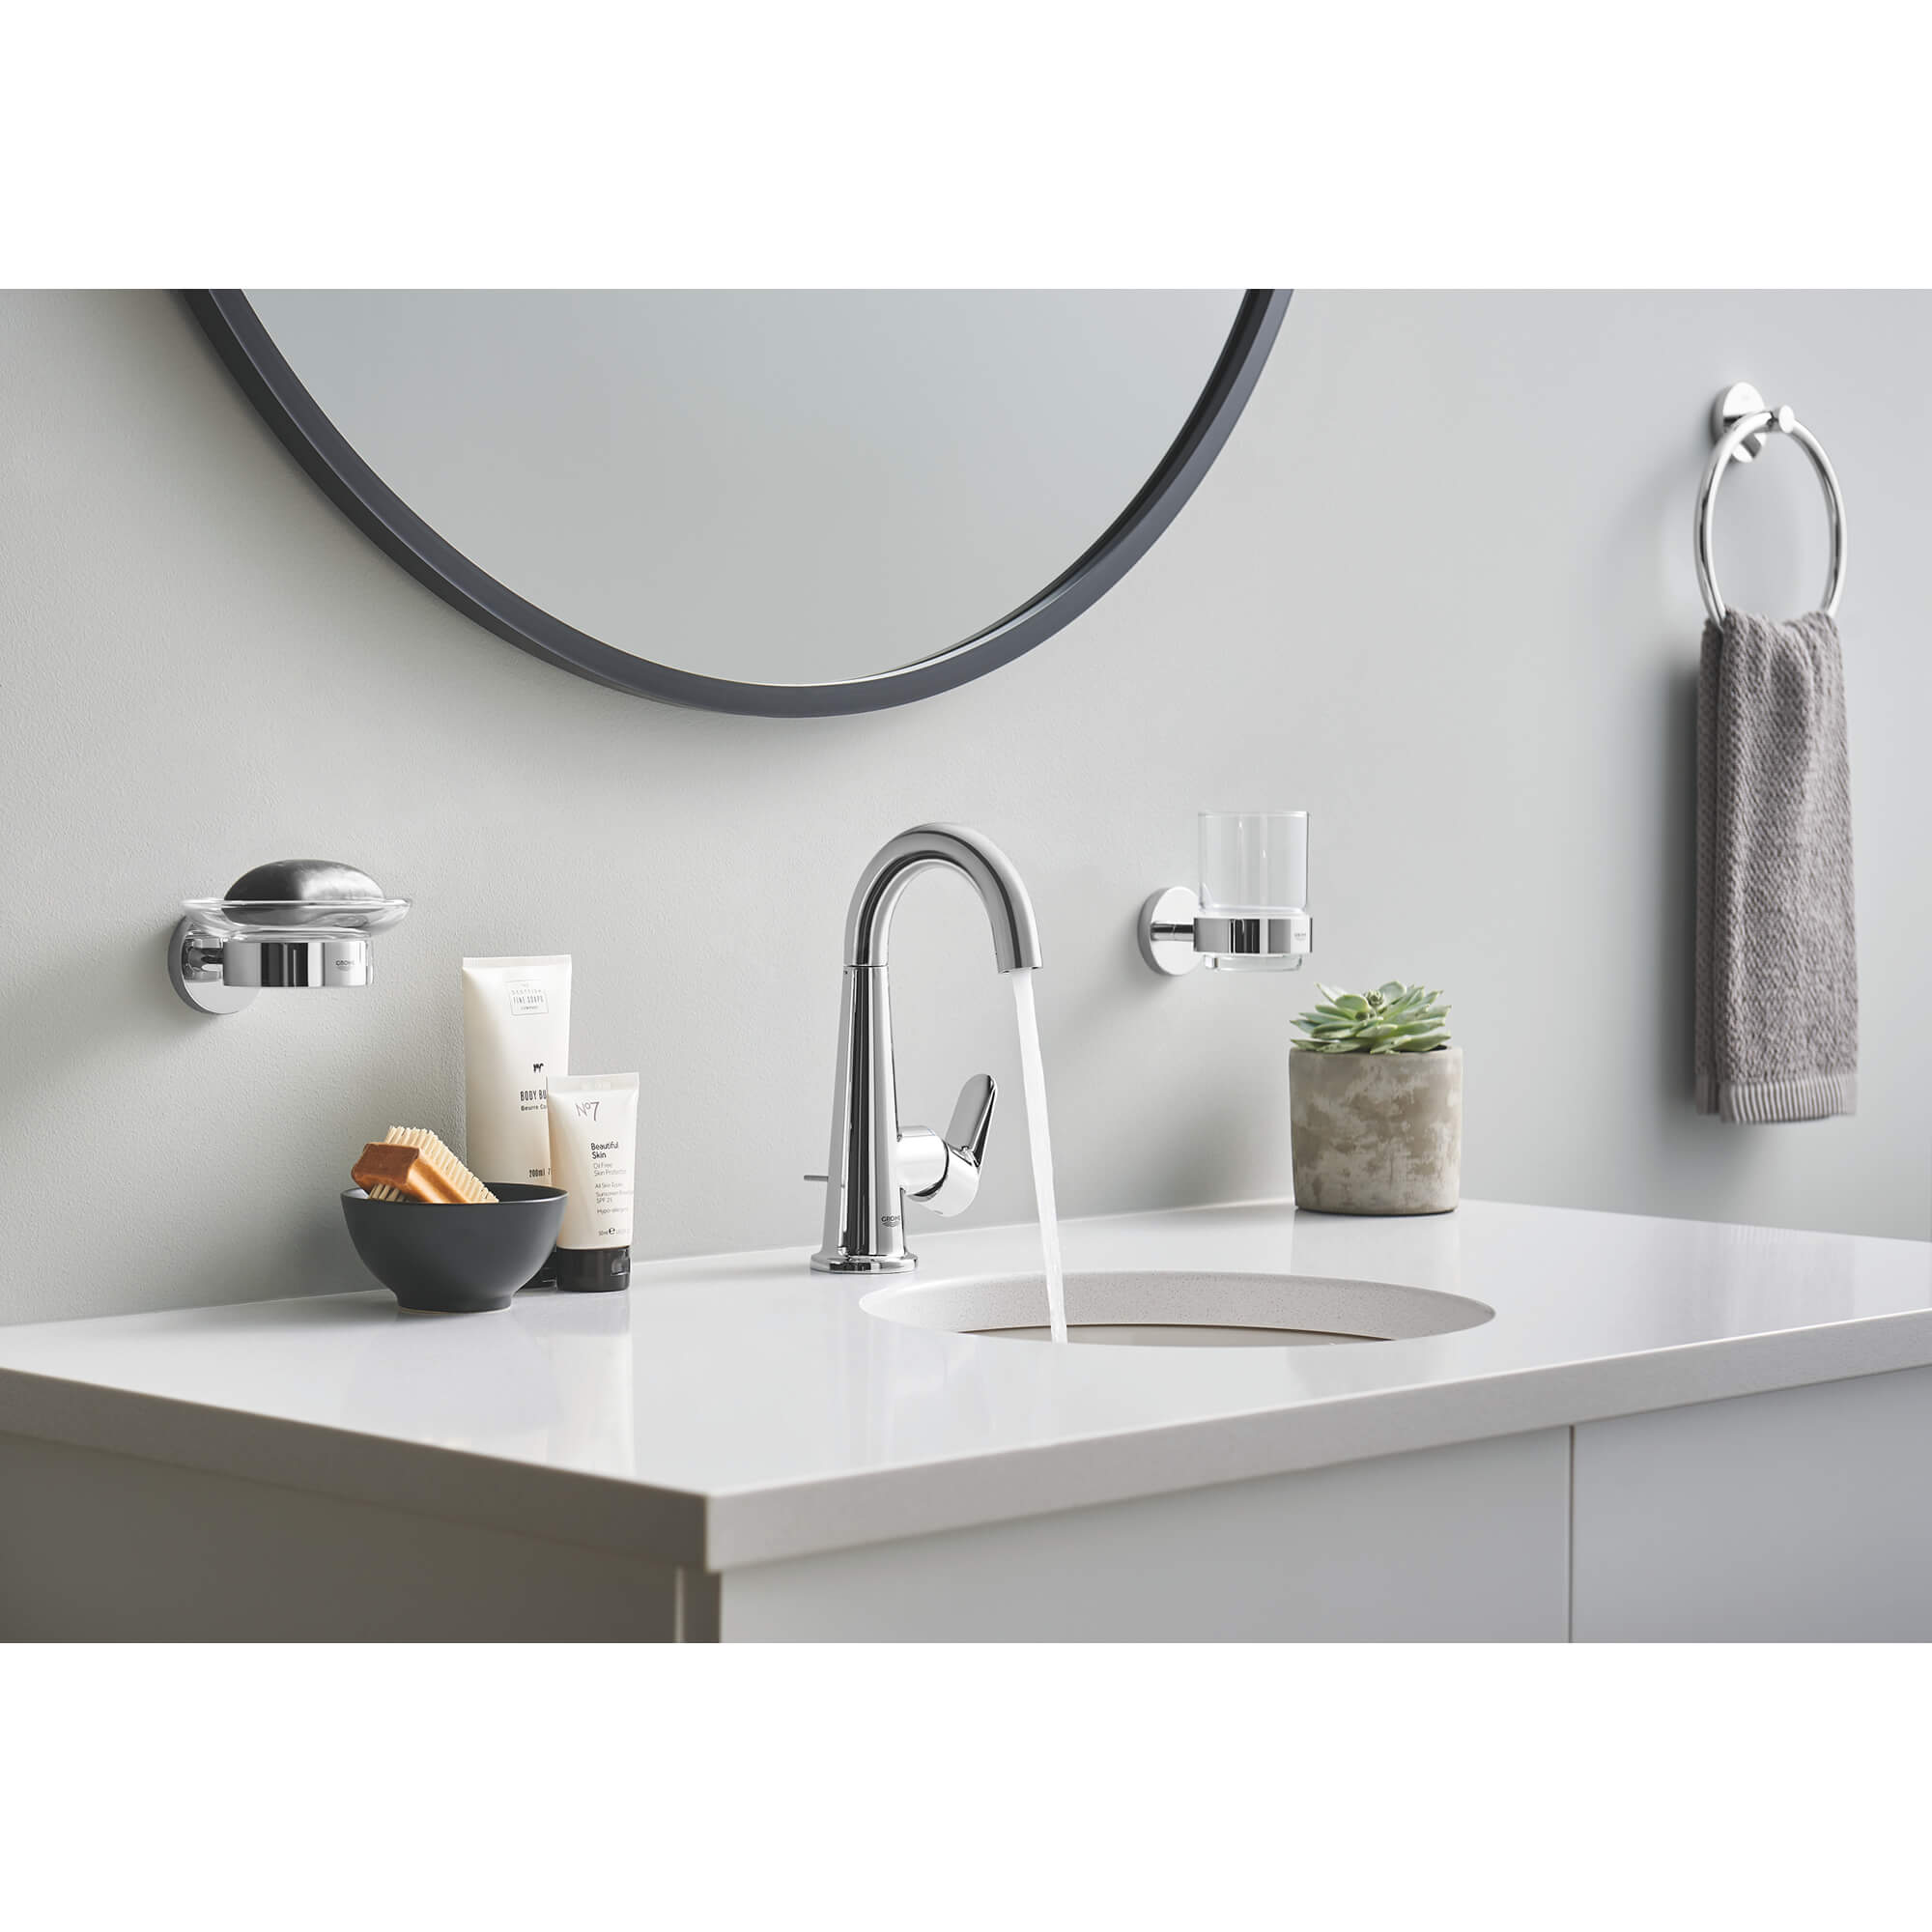 Glass with Holder GROHE CHROME